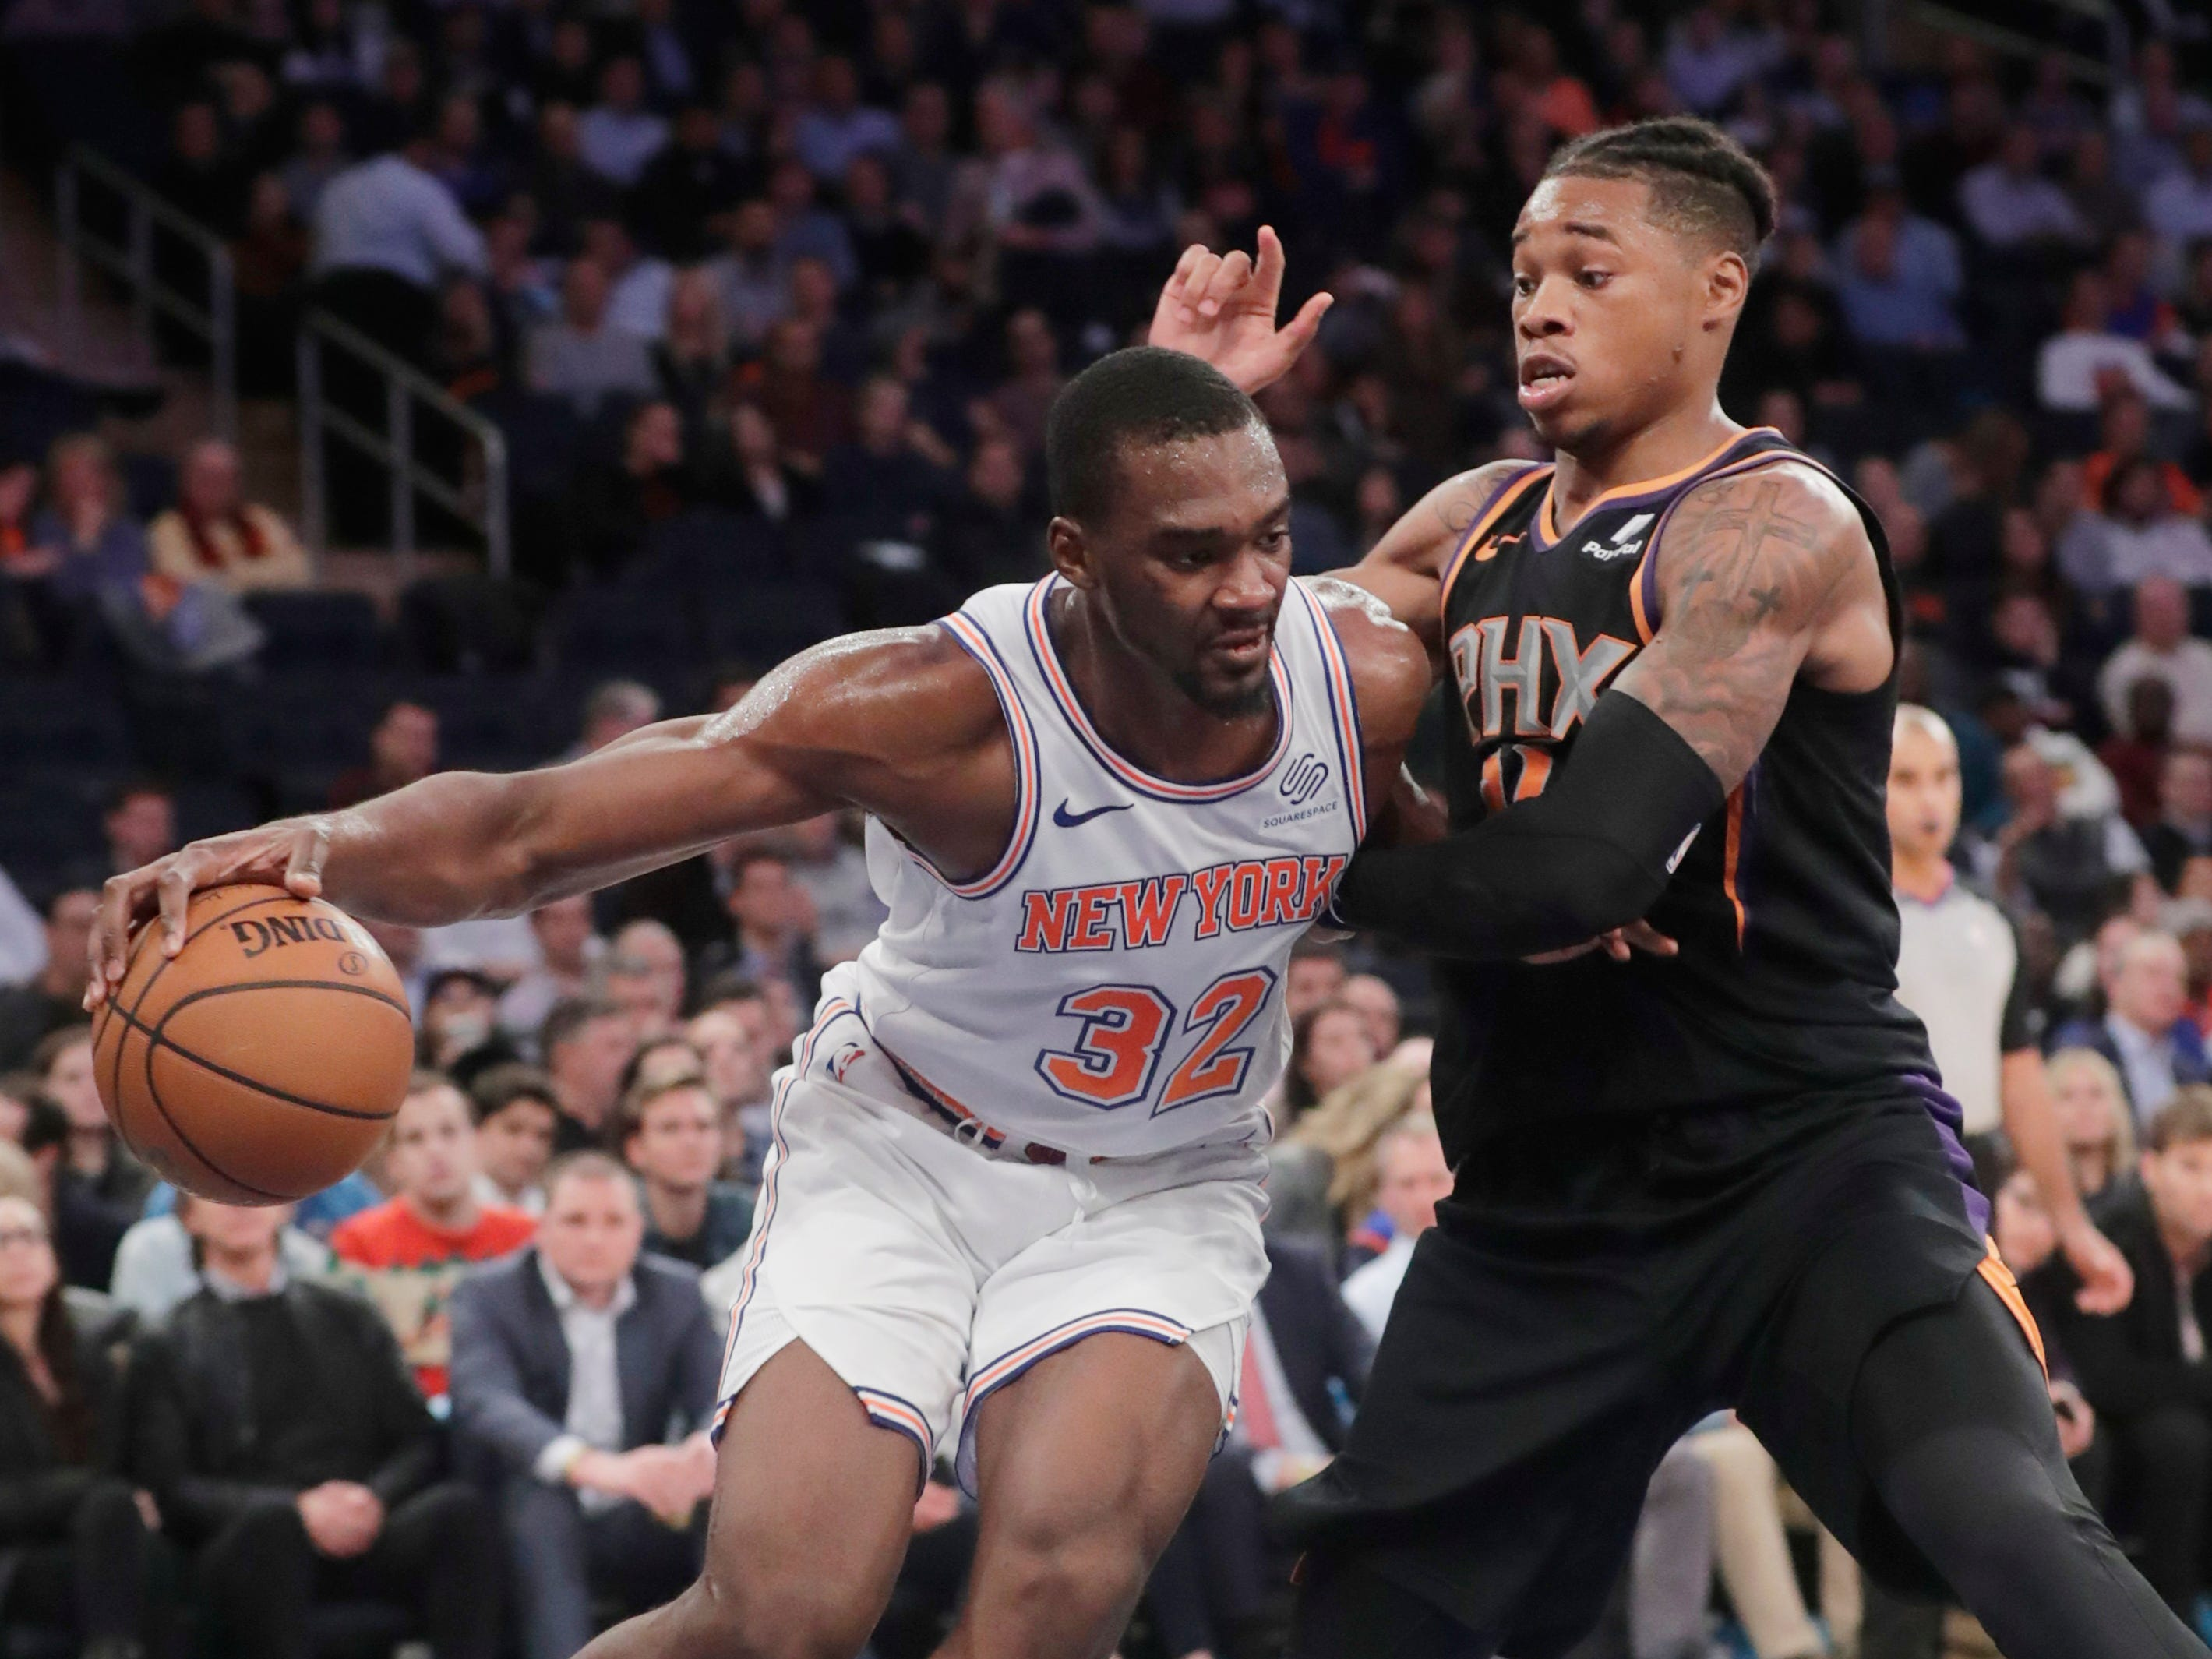 Phoenix Suns' Richaun Holmes, right, defends against New York Knicks' Noah Vonleh (32) during the second half of an NBA basketball game Monday, Dec. 17, 2018, in New York.